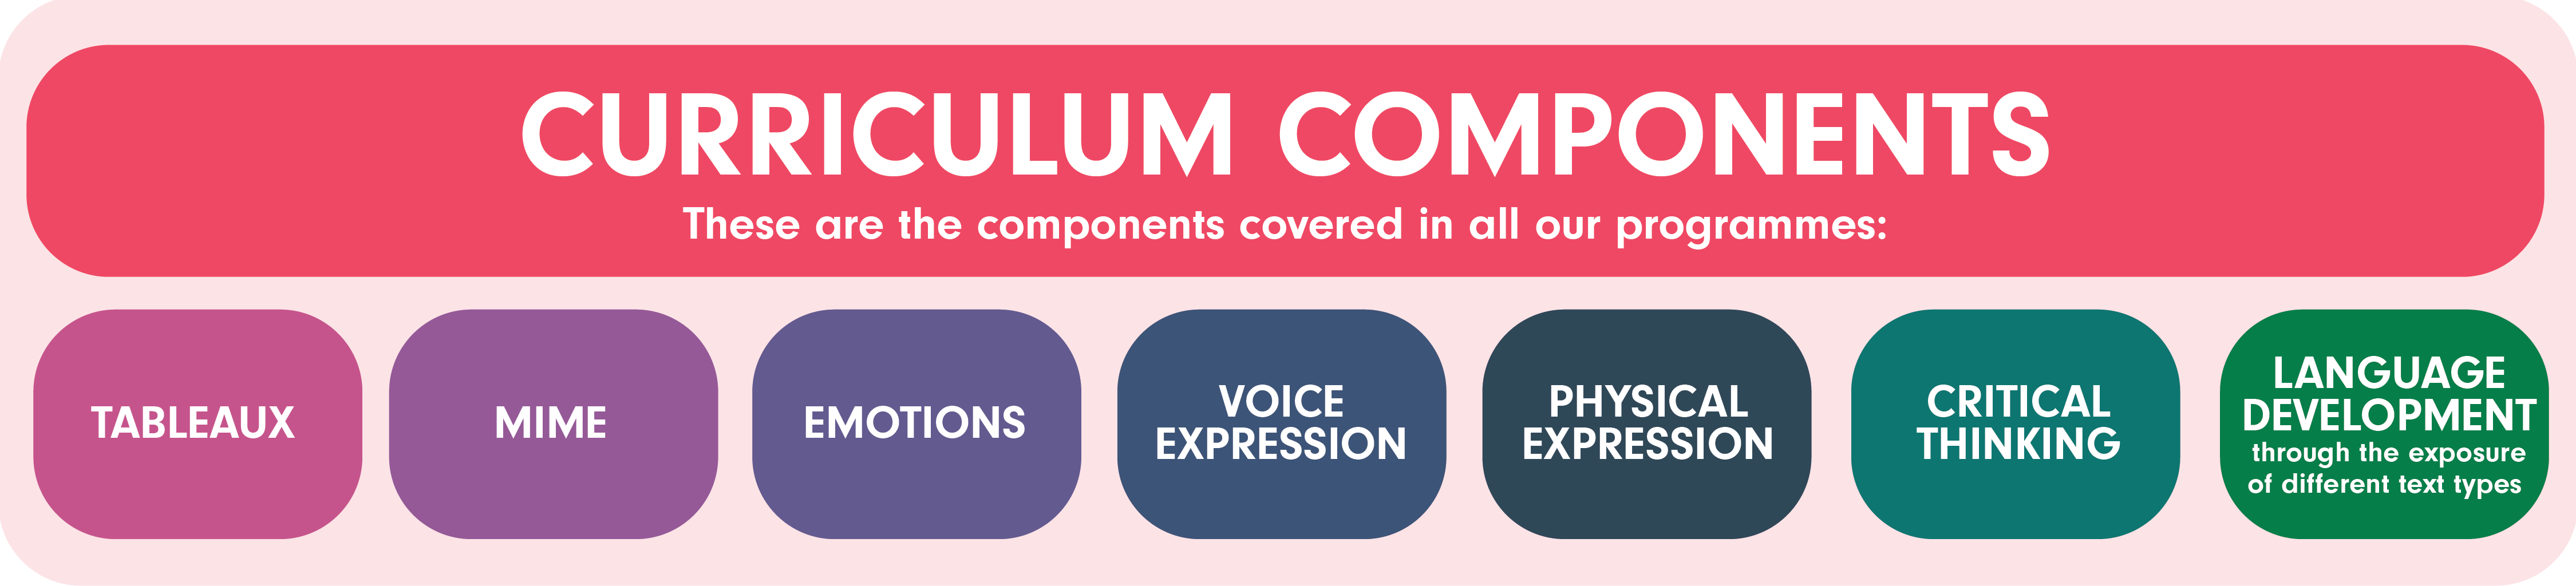 Curriculum Components 01